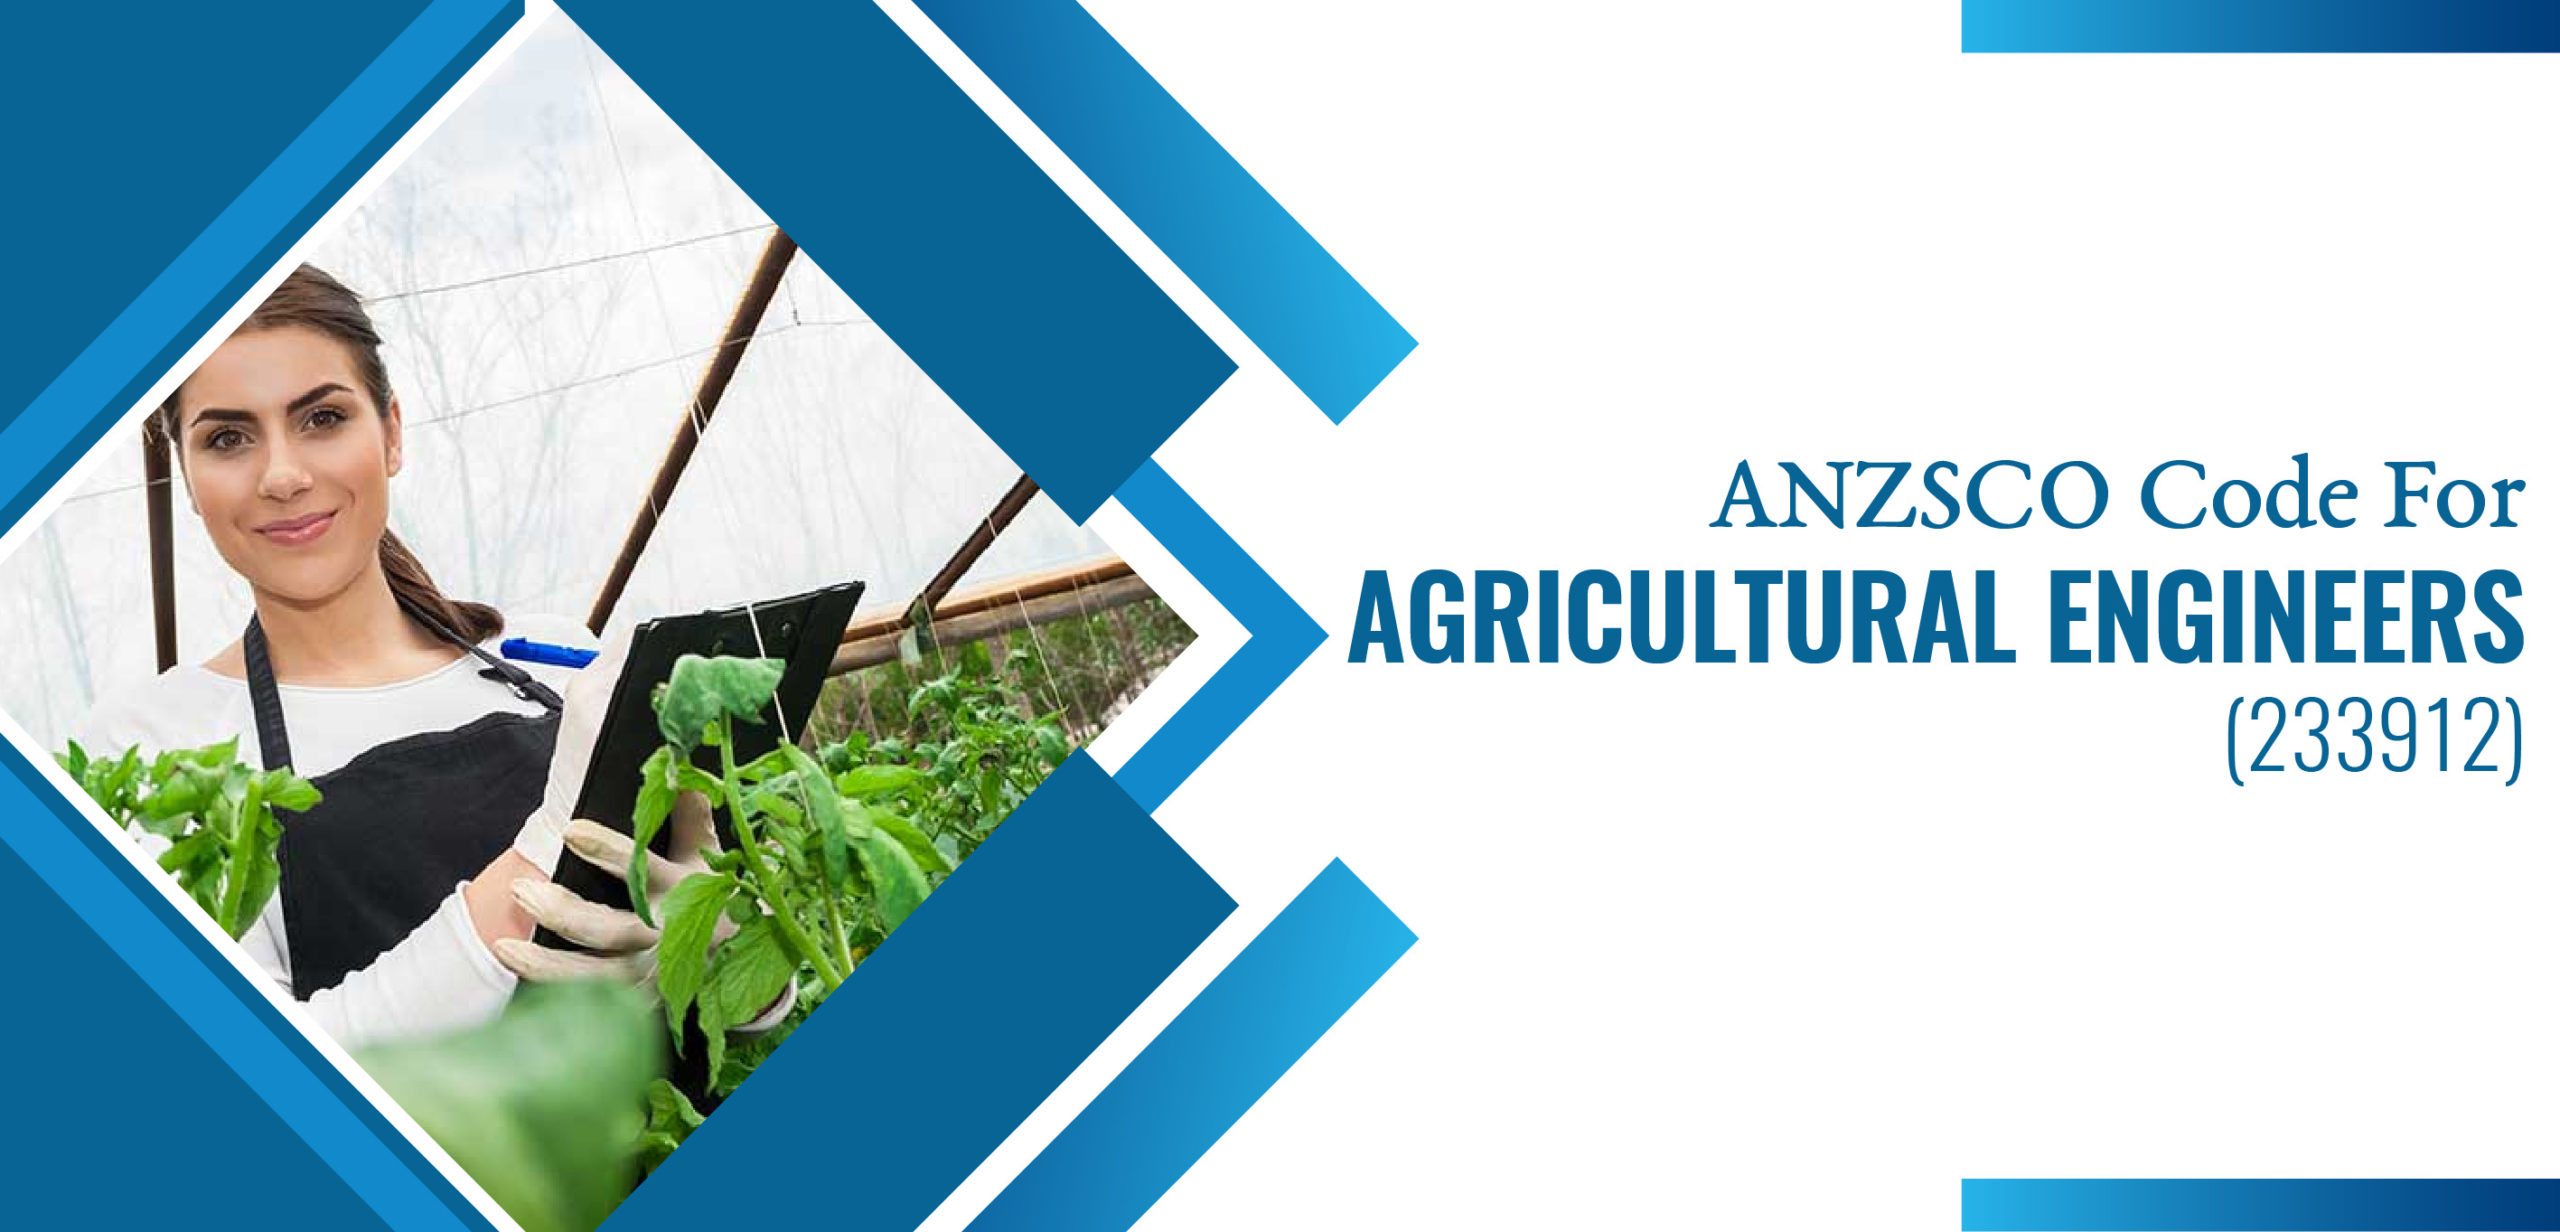 ANZSCO Code for Agricultural Engineer